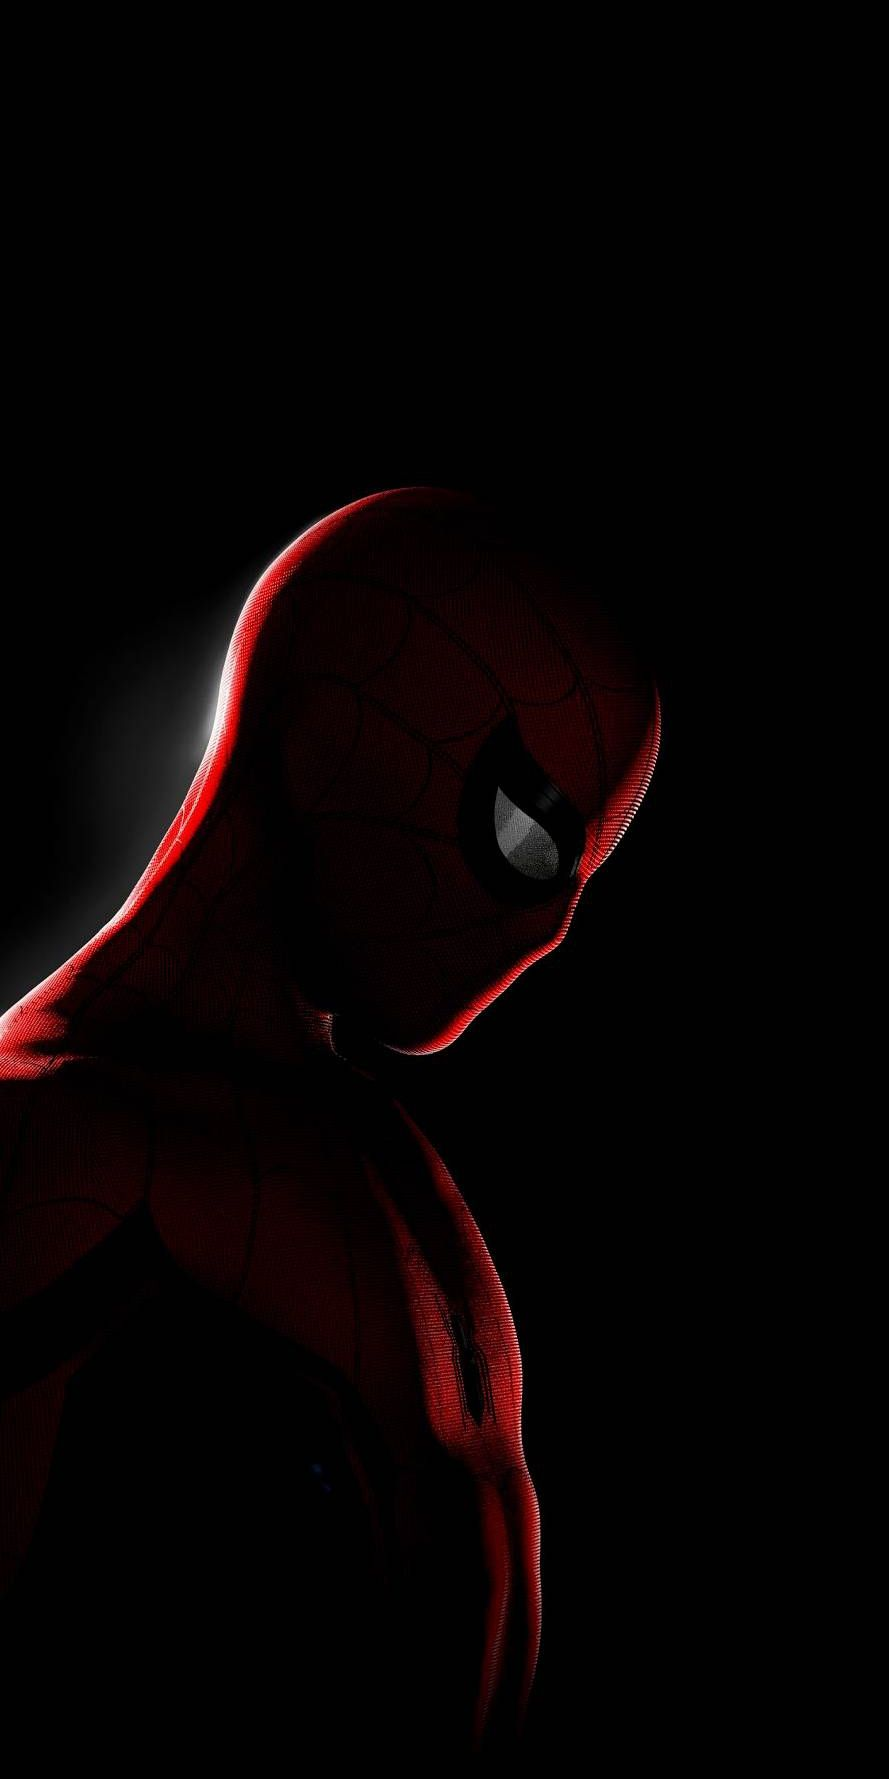 Far From Home Spiderman Iphone Wallpaper Marvel Iphone Wallpaper Marvel Background Superhero Wallpaper